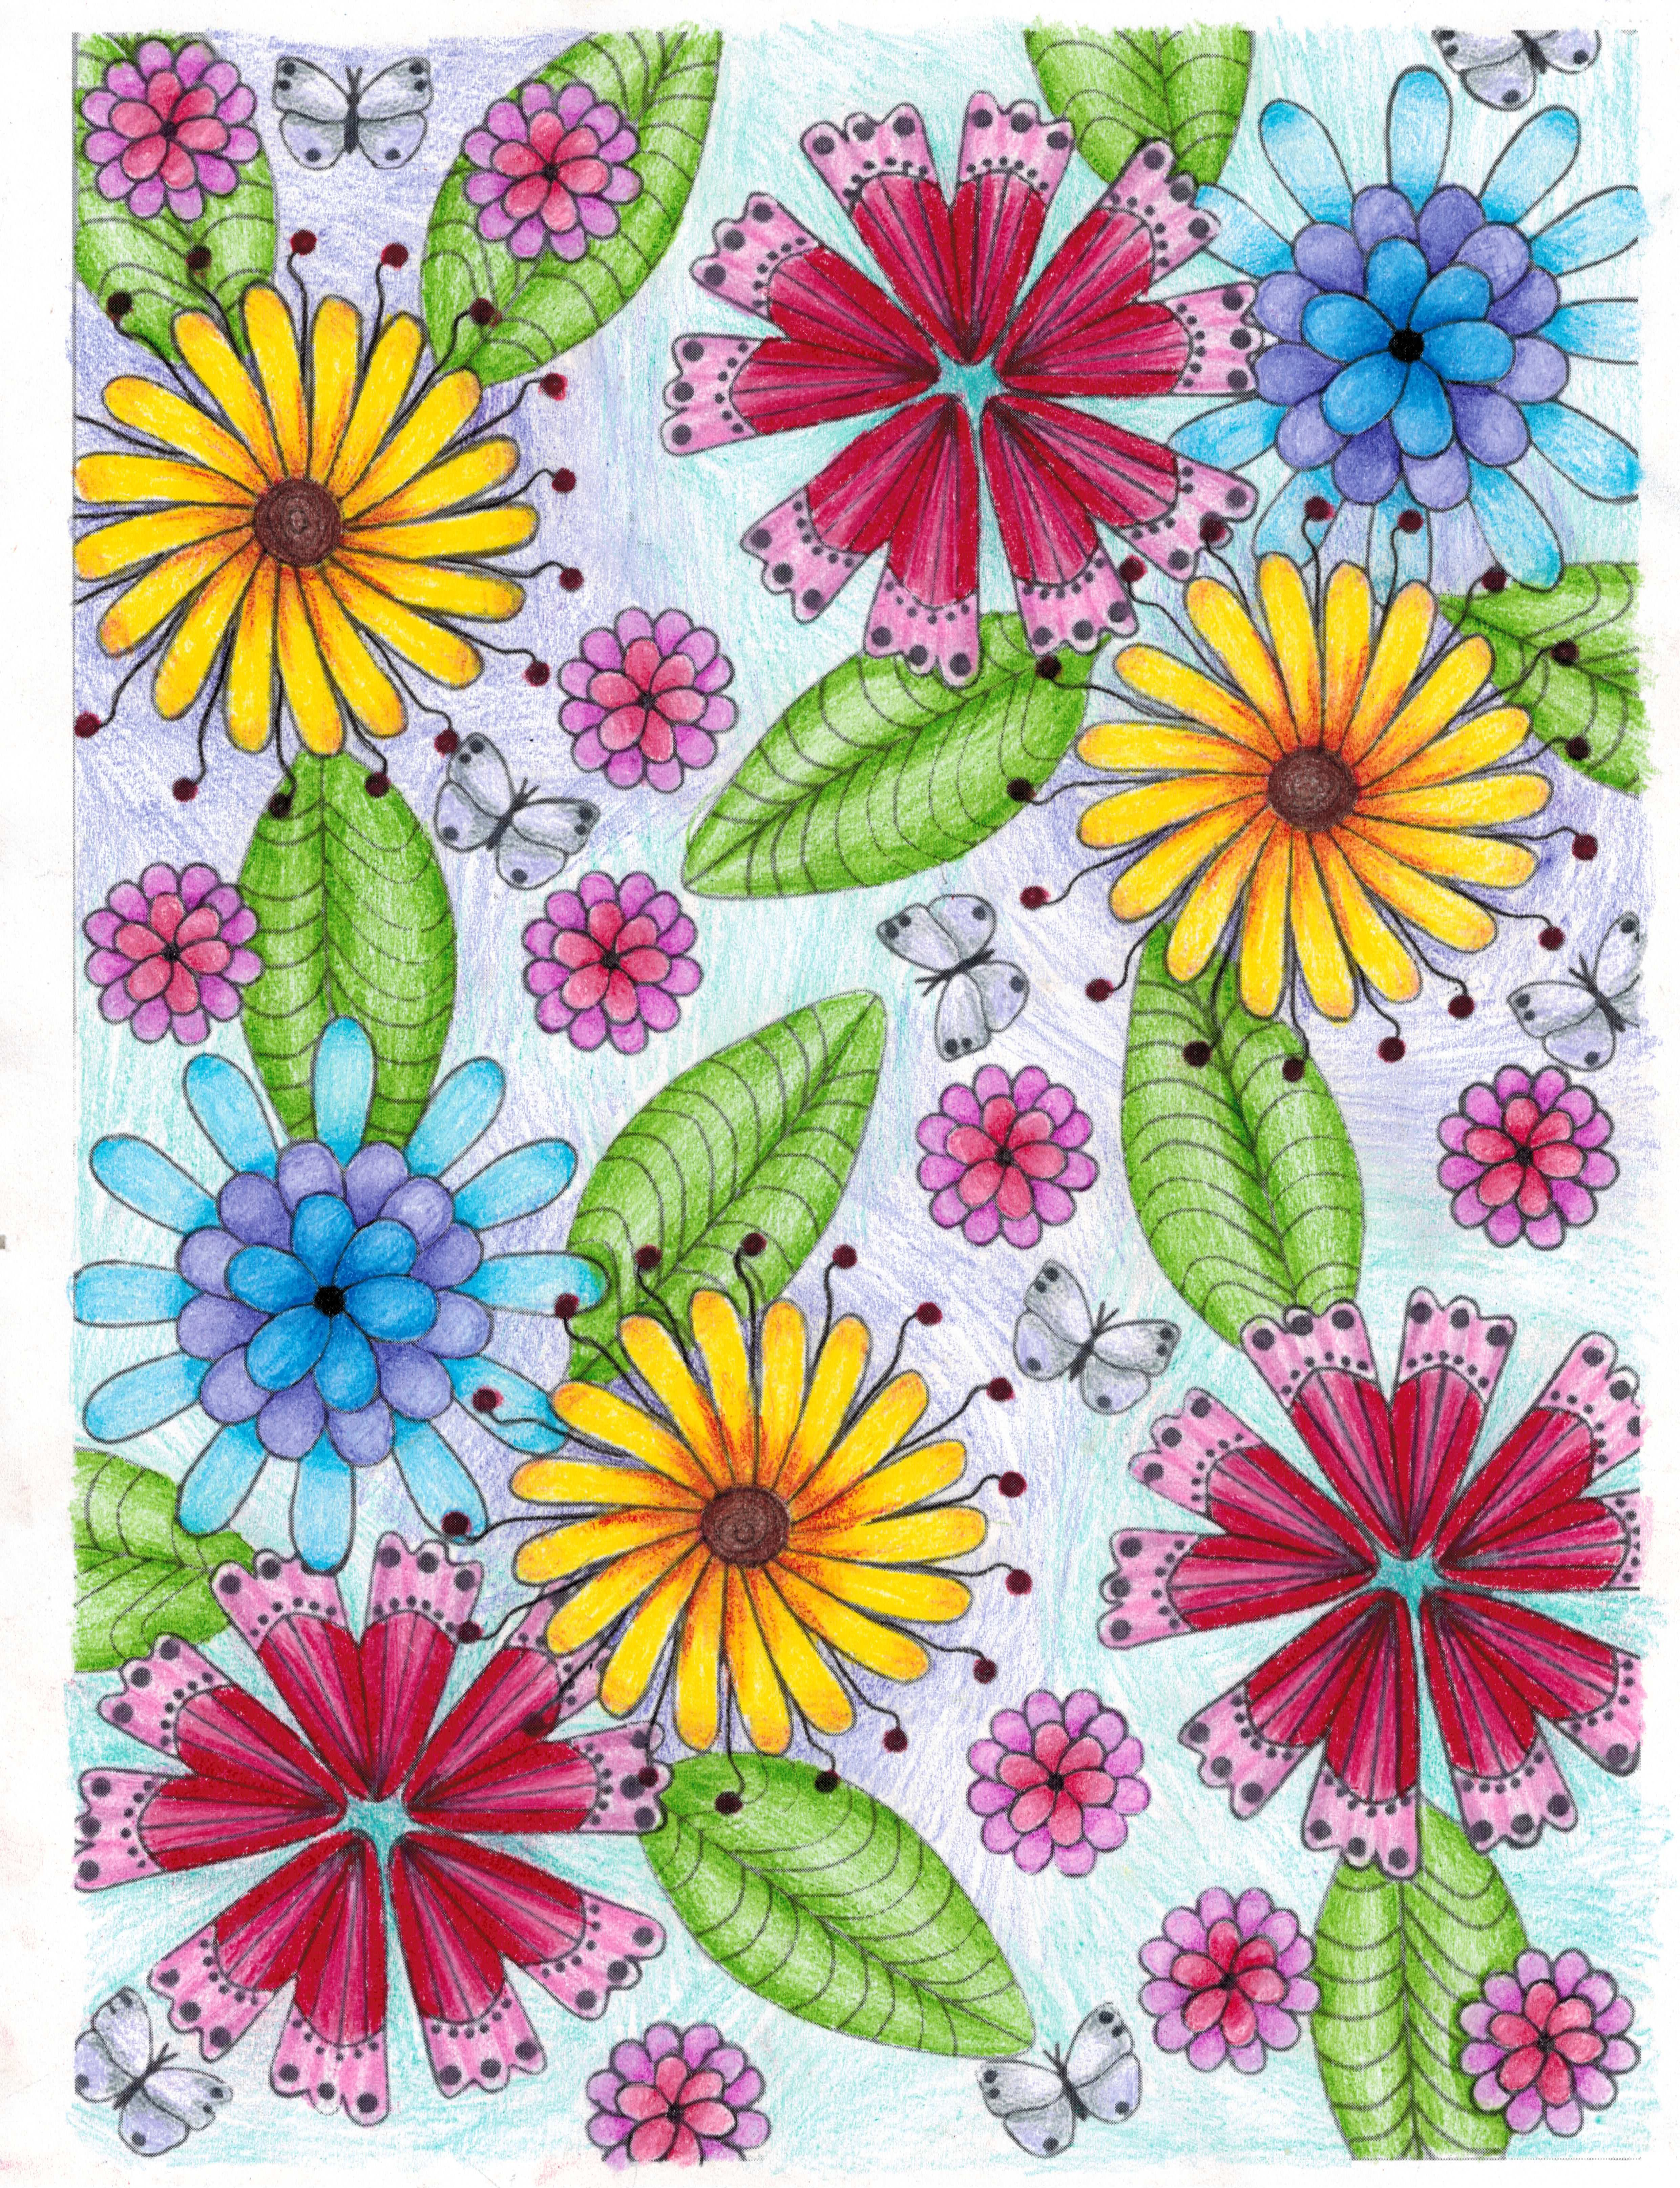 Abby (12-18 division) from Garden Party! Flower Designs to Color ...